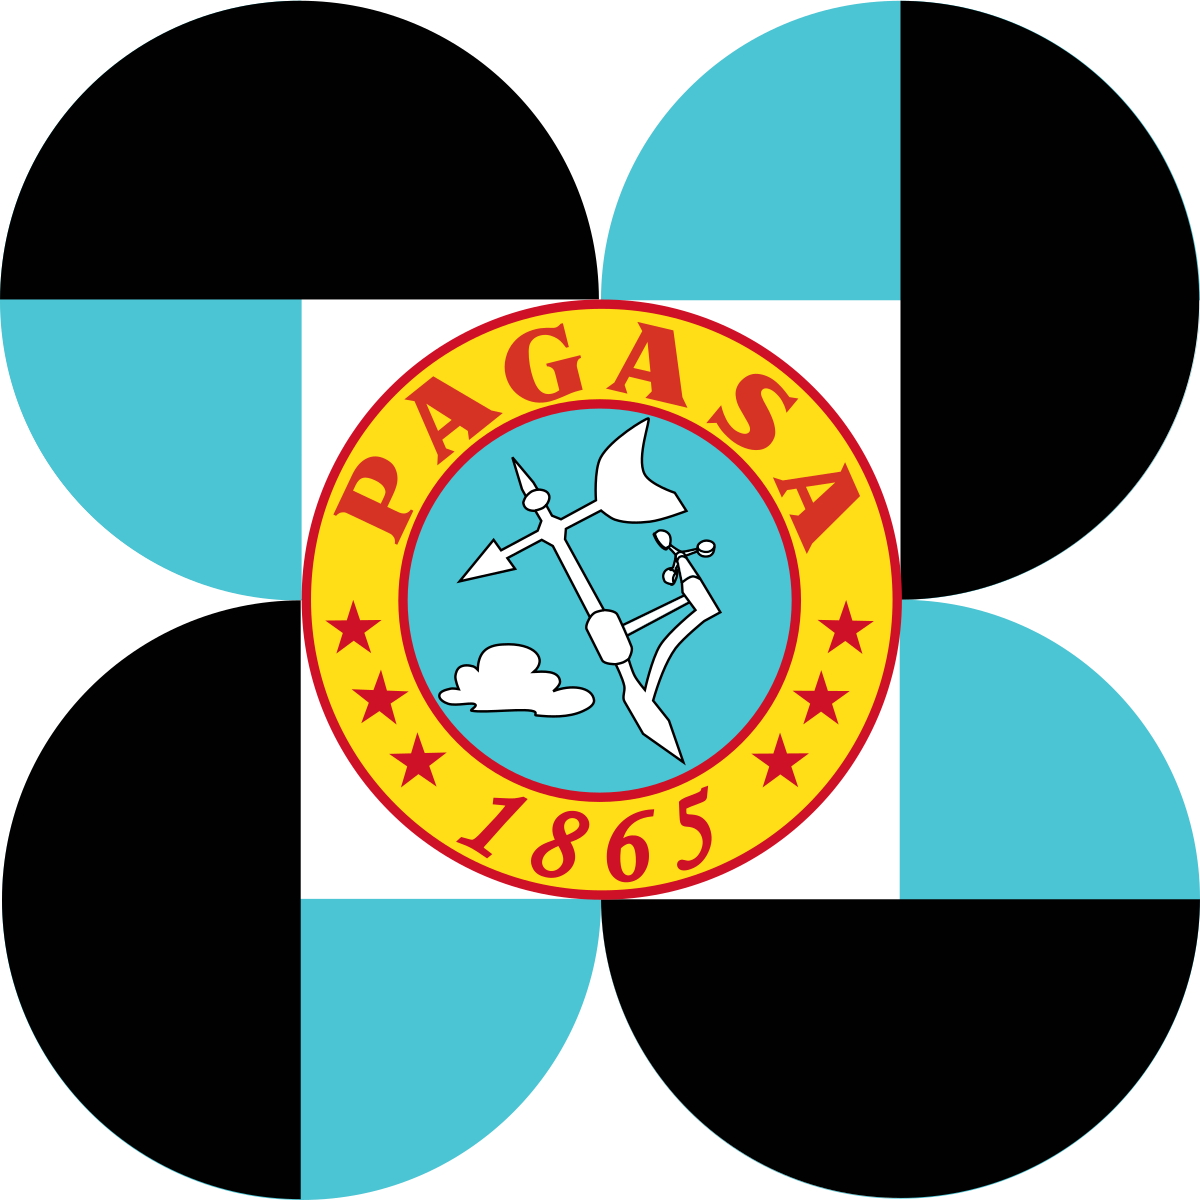 Philippine Atmospheric, Geophysical and Astronomical Services Administration